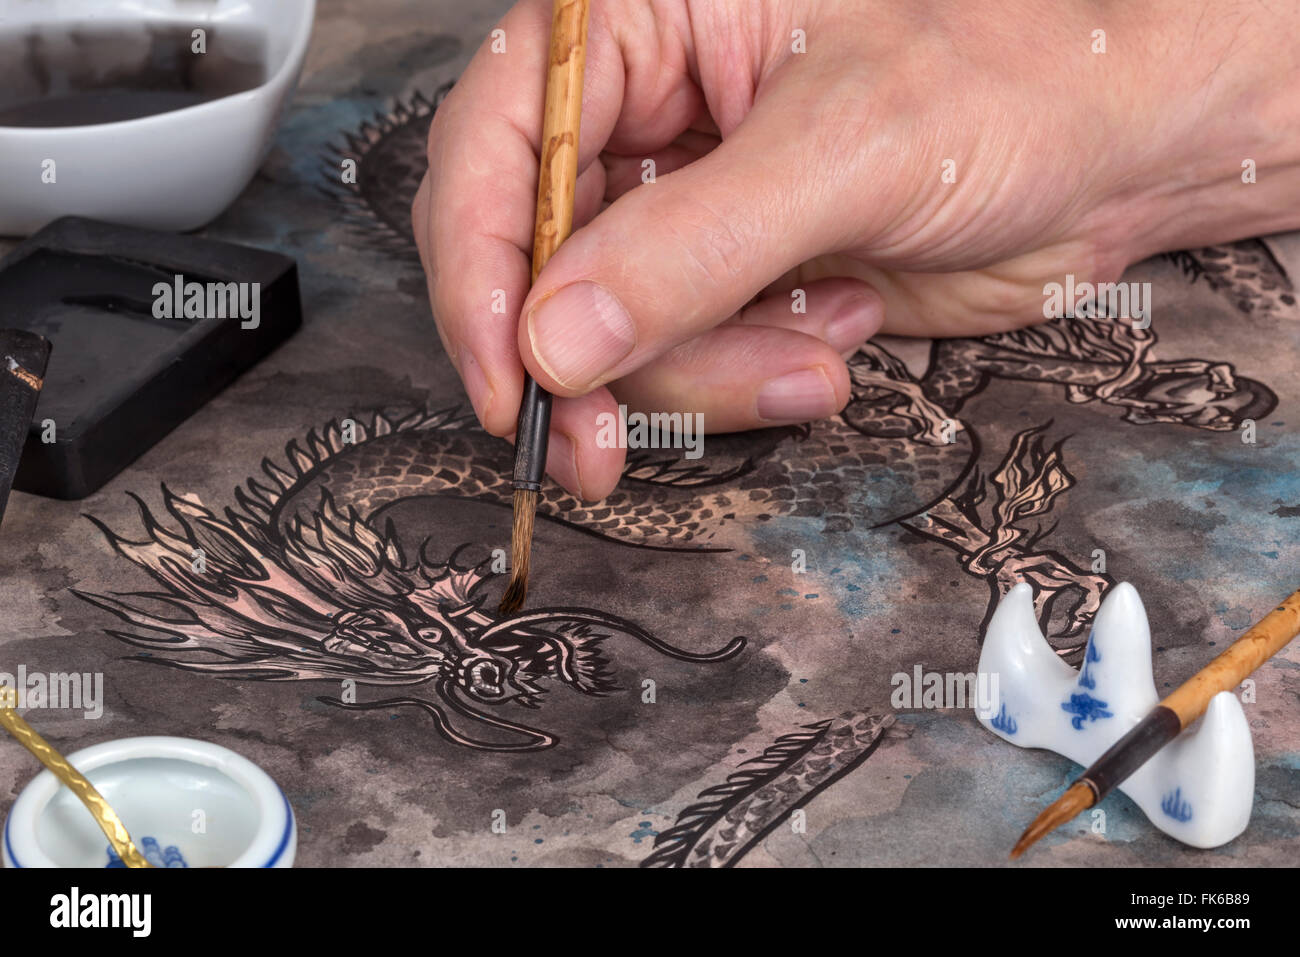 Artist using calligraphy brush and block ink to paint a traditional Chinese dragon - Stock Image